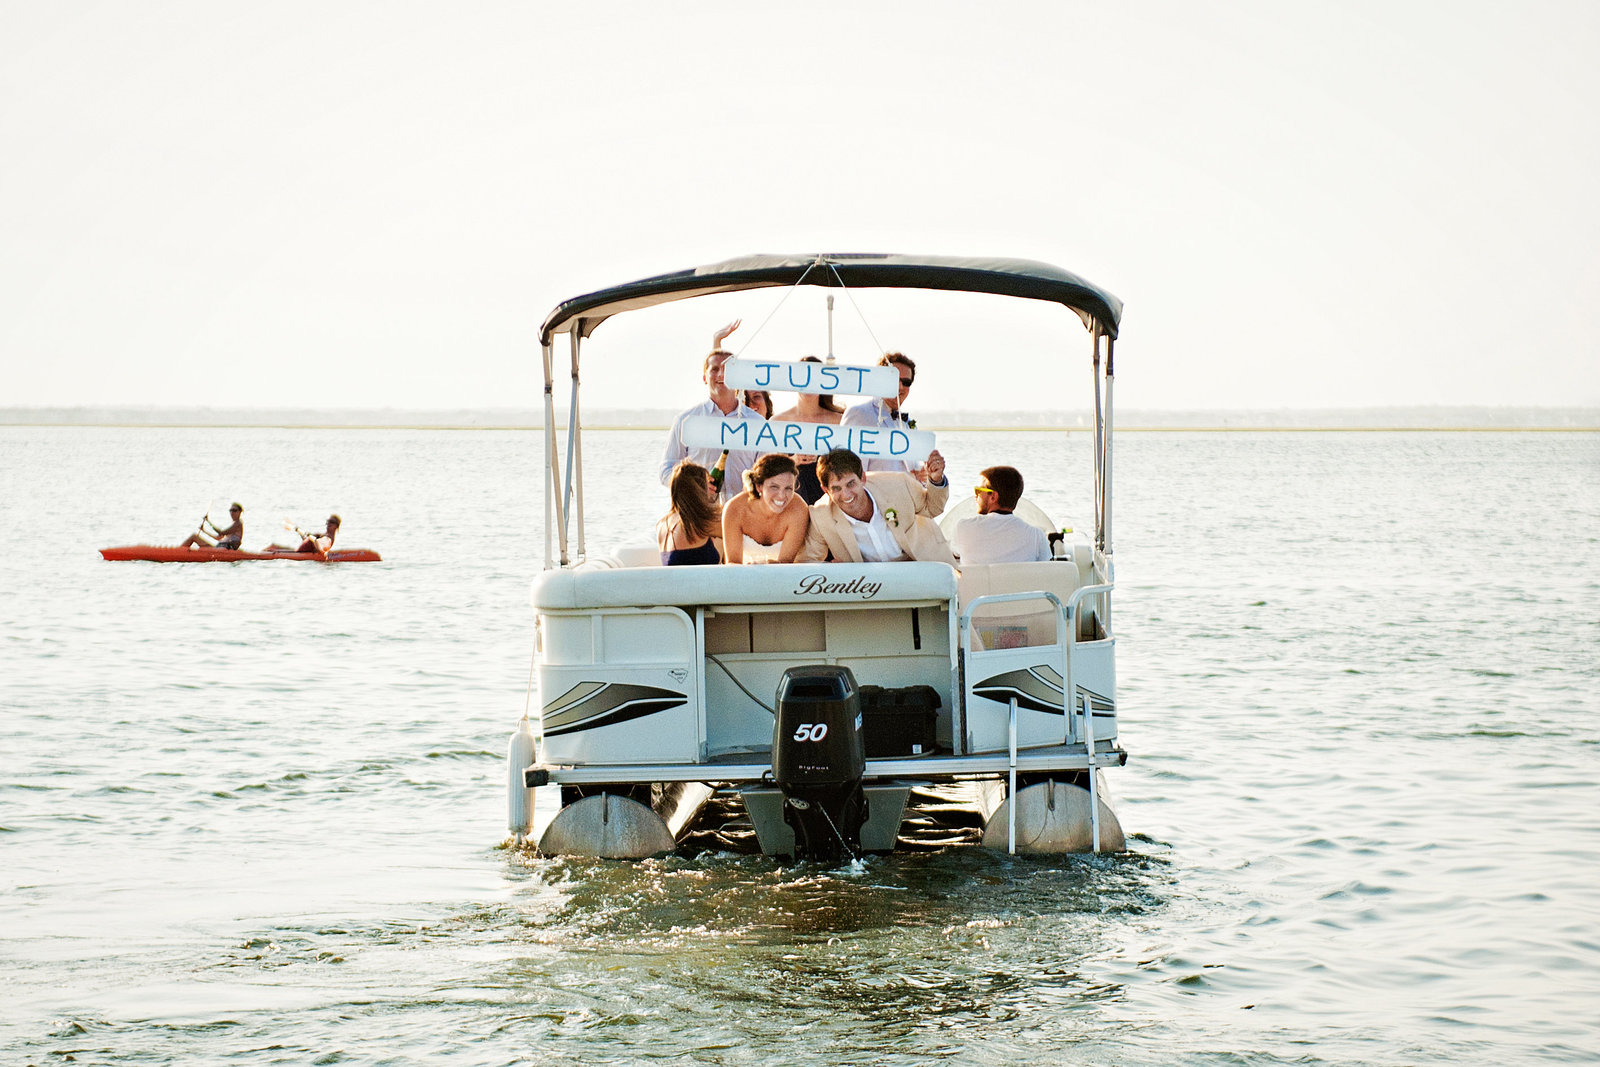 A newly married couple hop a boat after the ceremony on Long Beach Island, NJ.